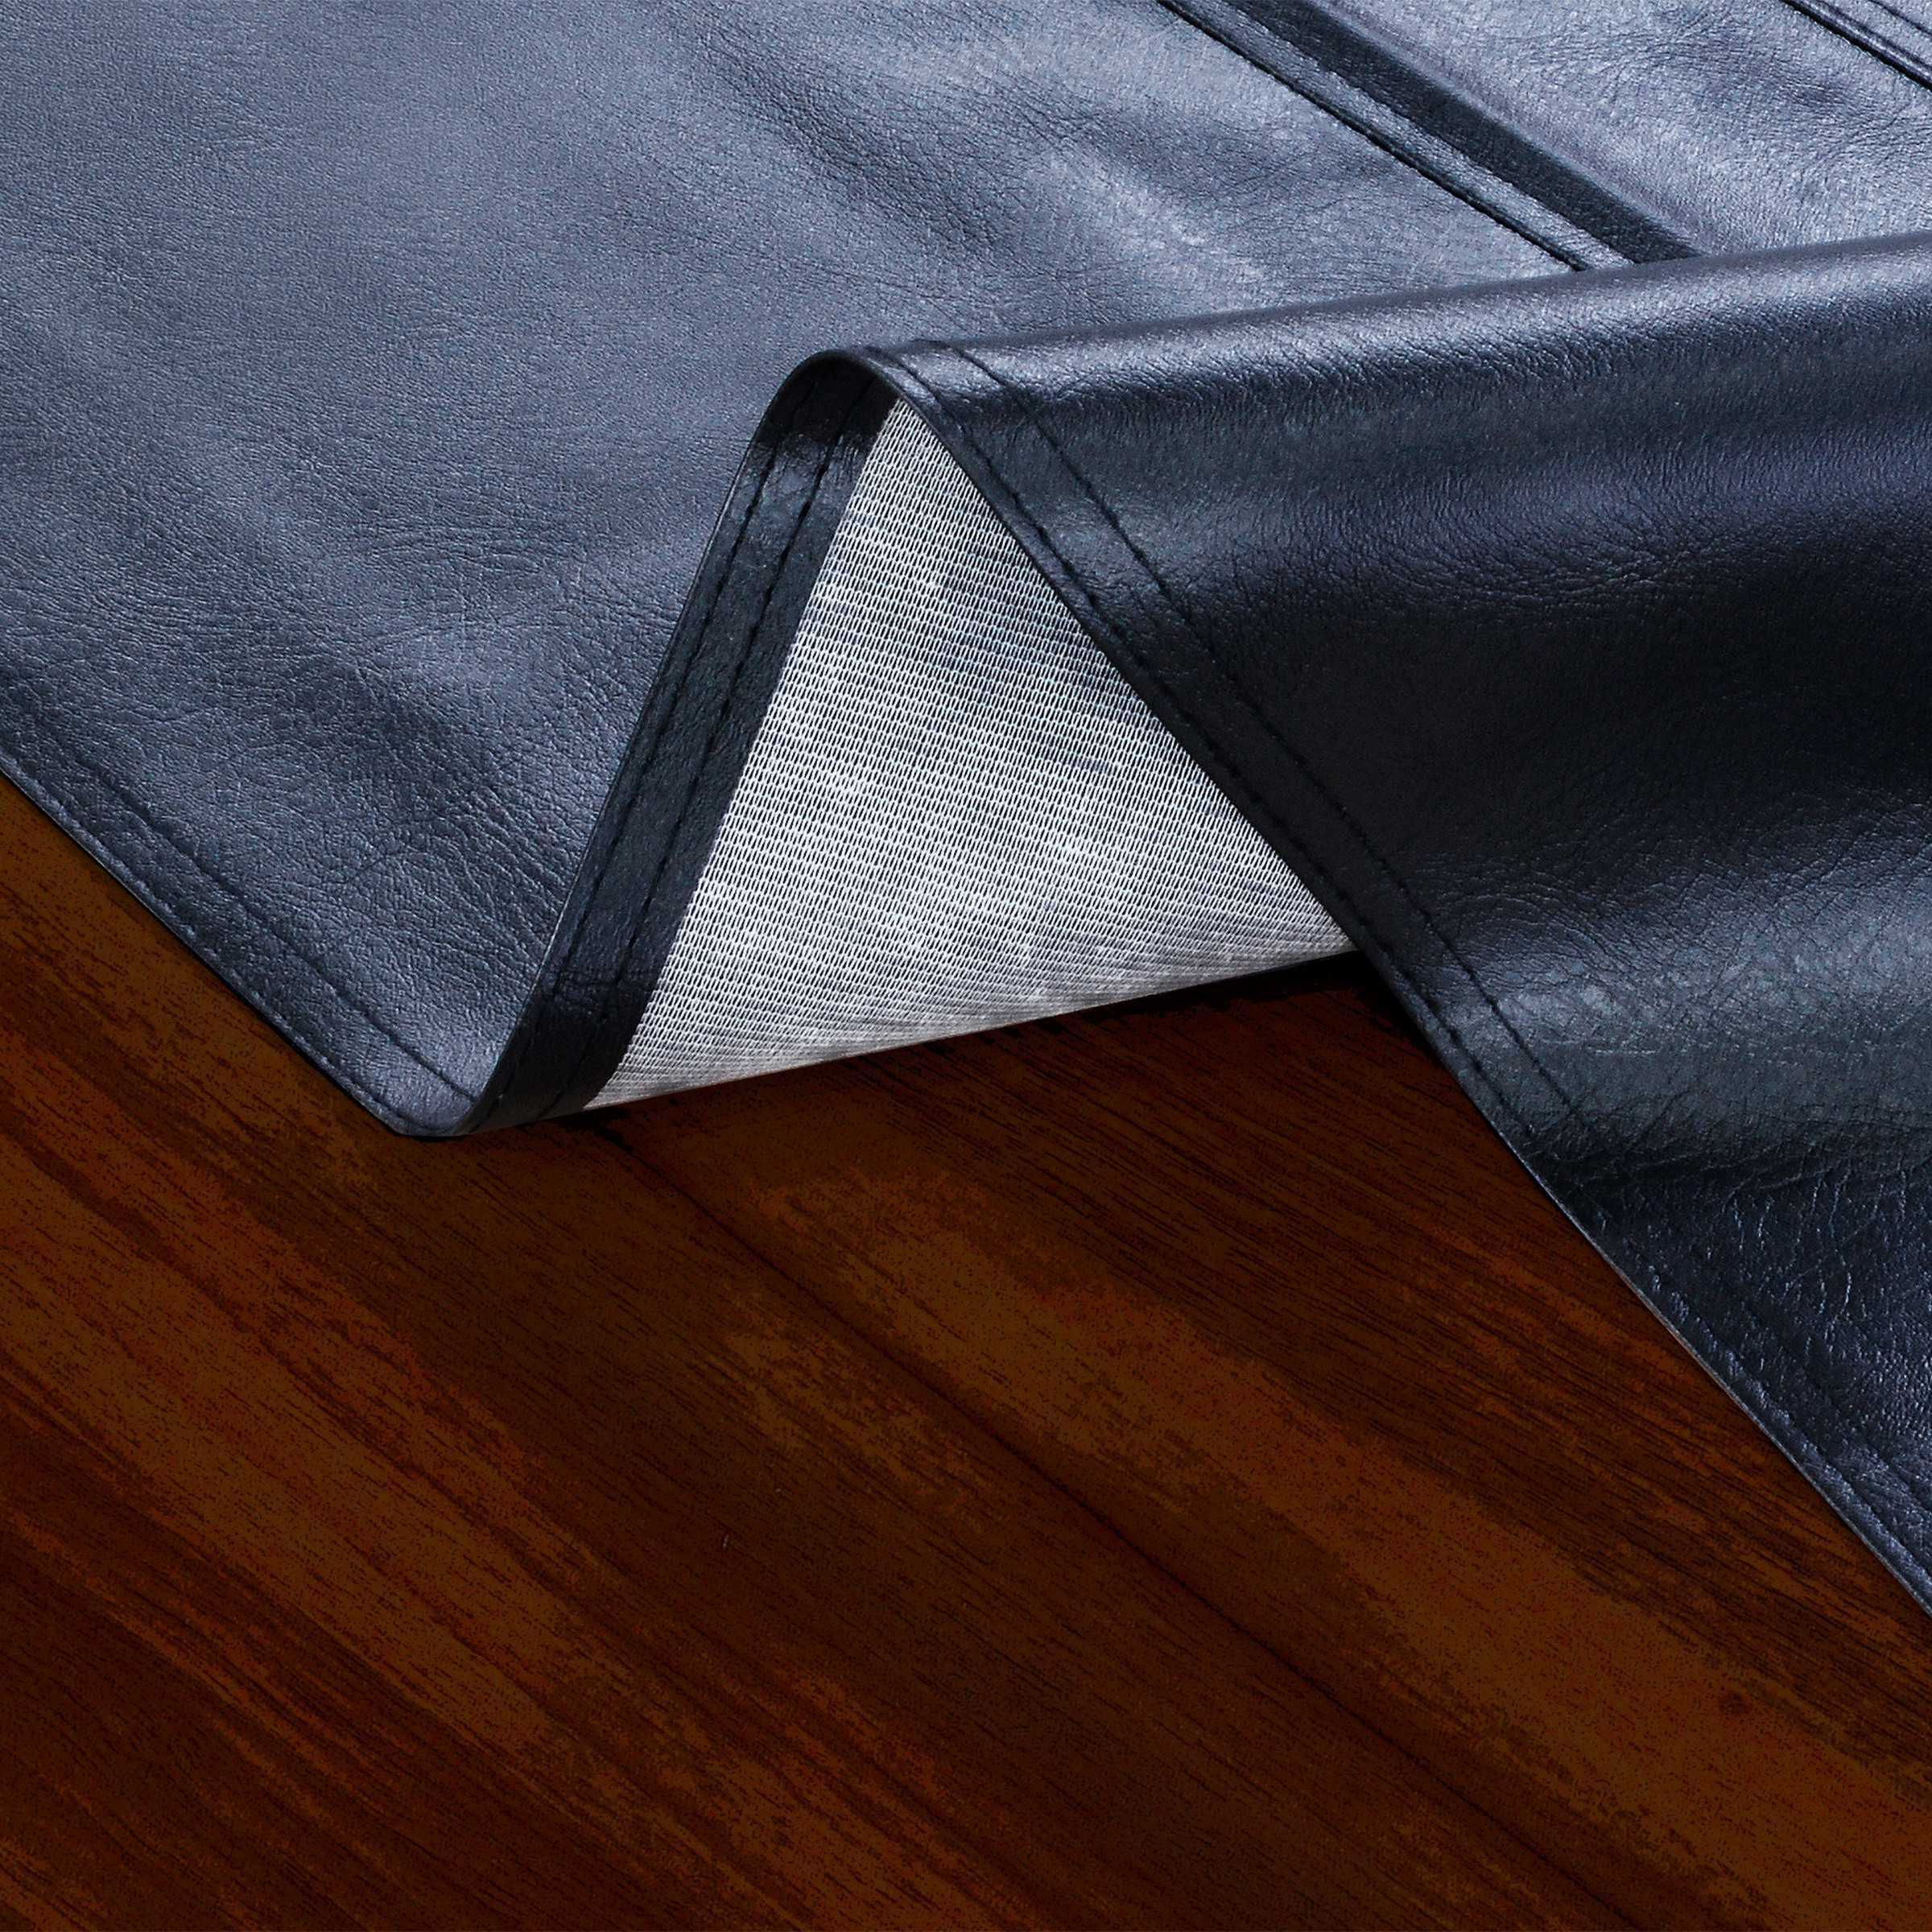 CHICAGO BEARS 8' DELUXE POOL TABLE COVER